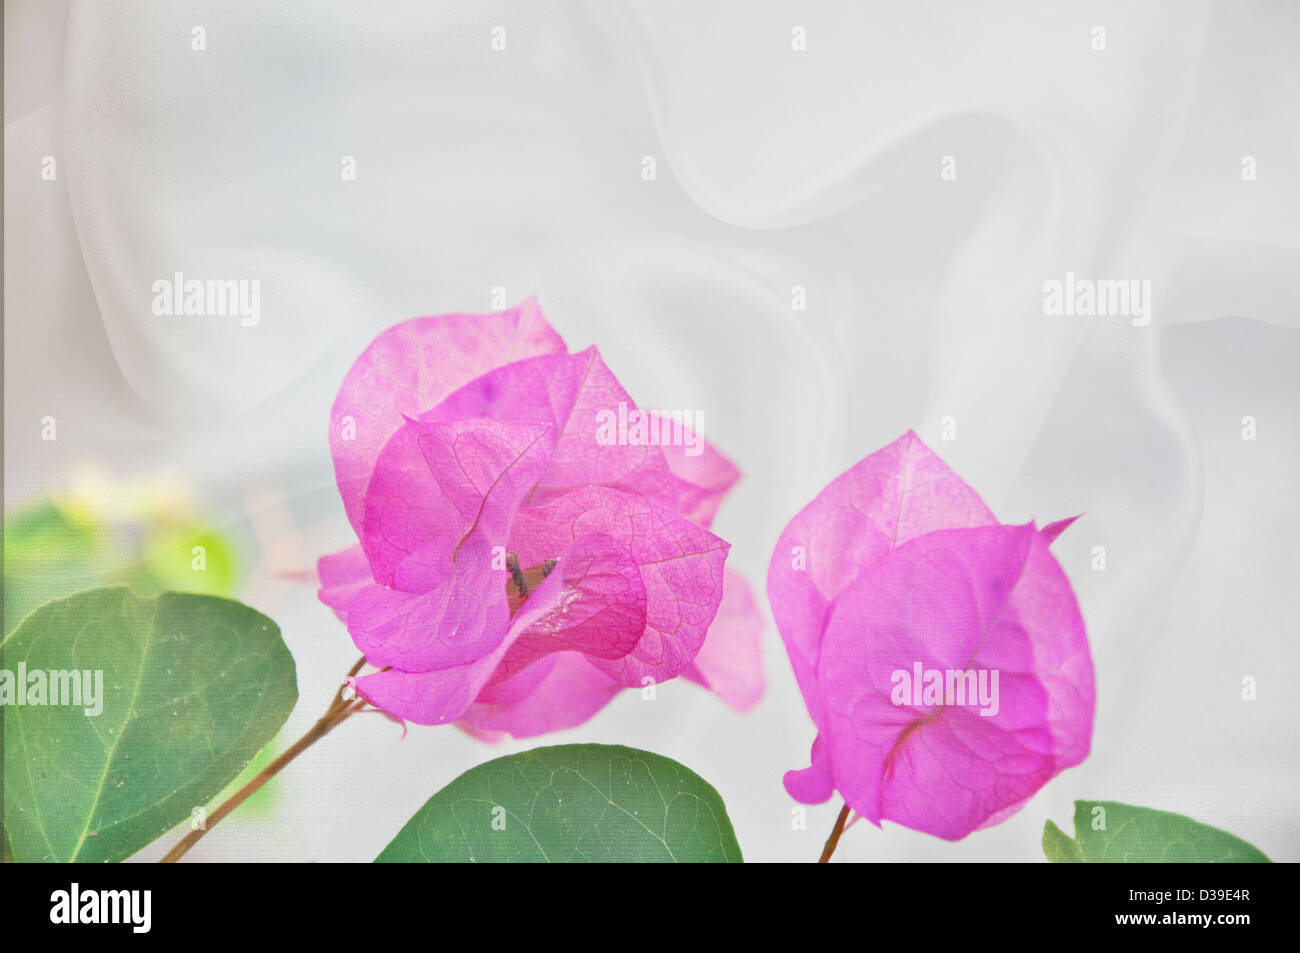 These are pastel pink Bougainvillea tropical flowers on a white silk background with plenty of room for text. - Stock Image